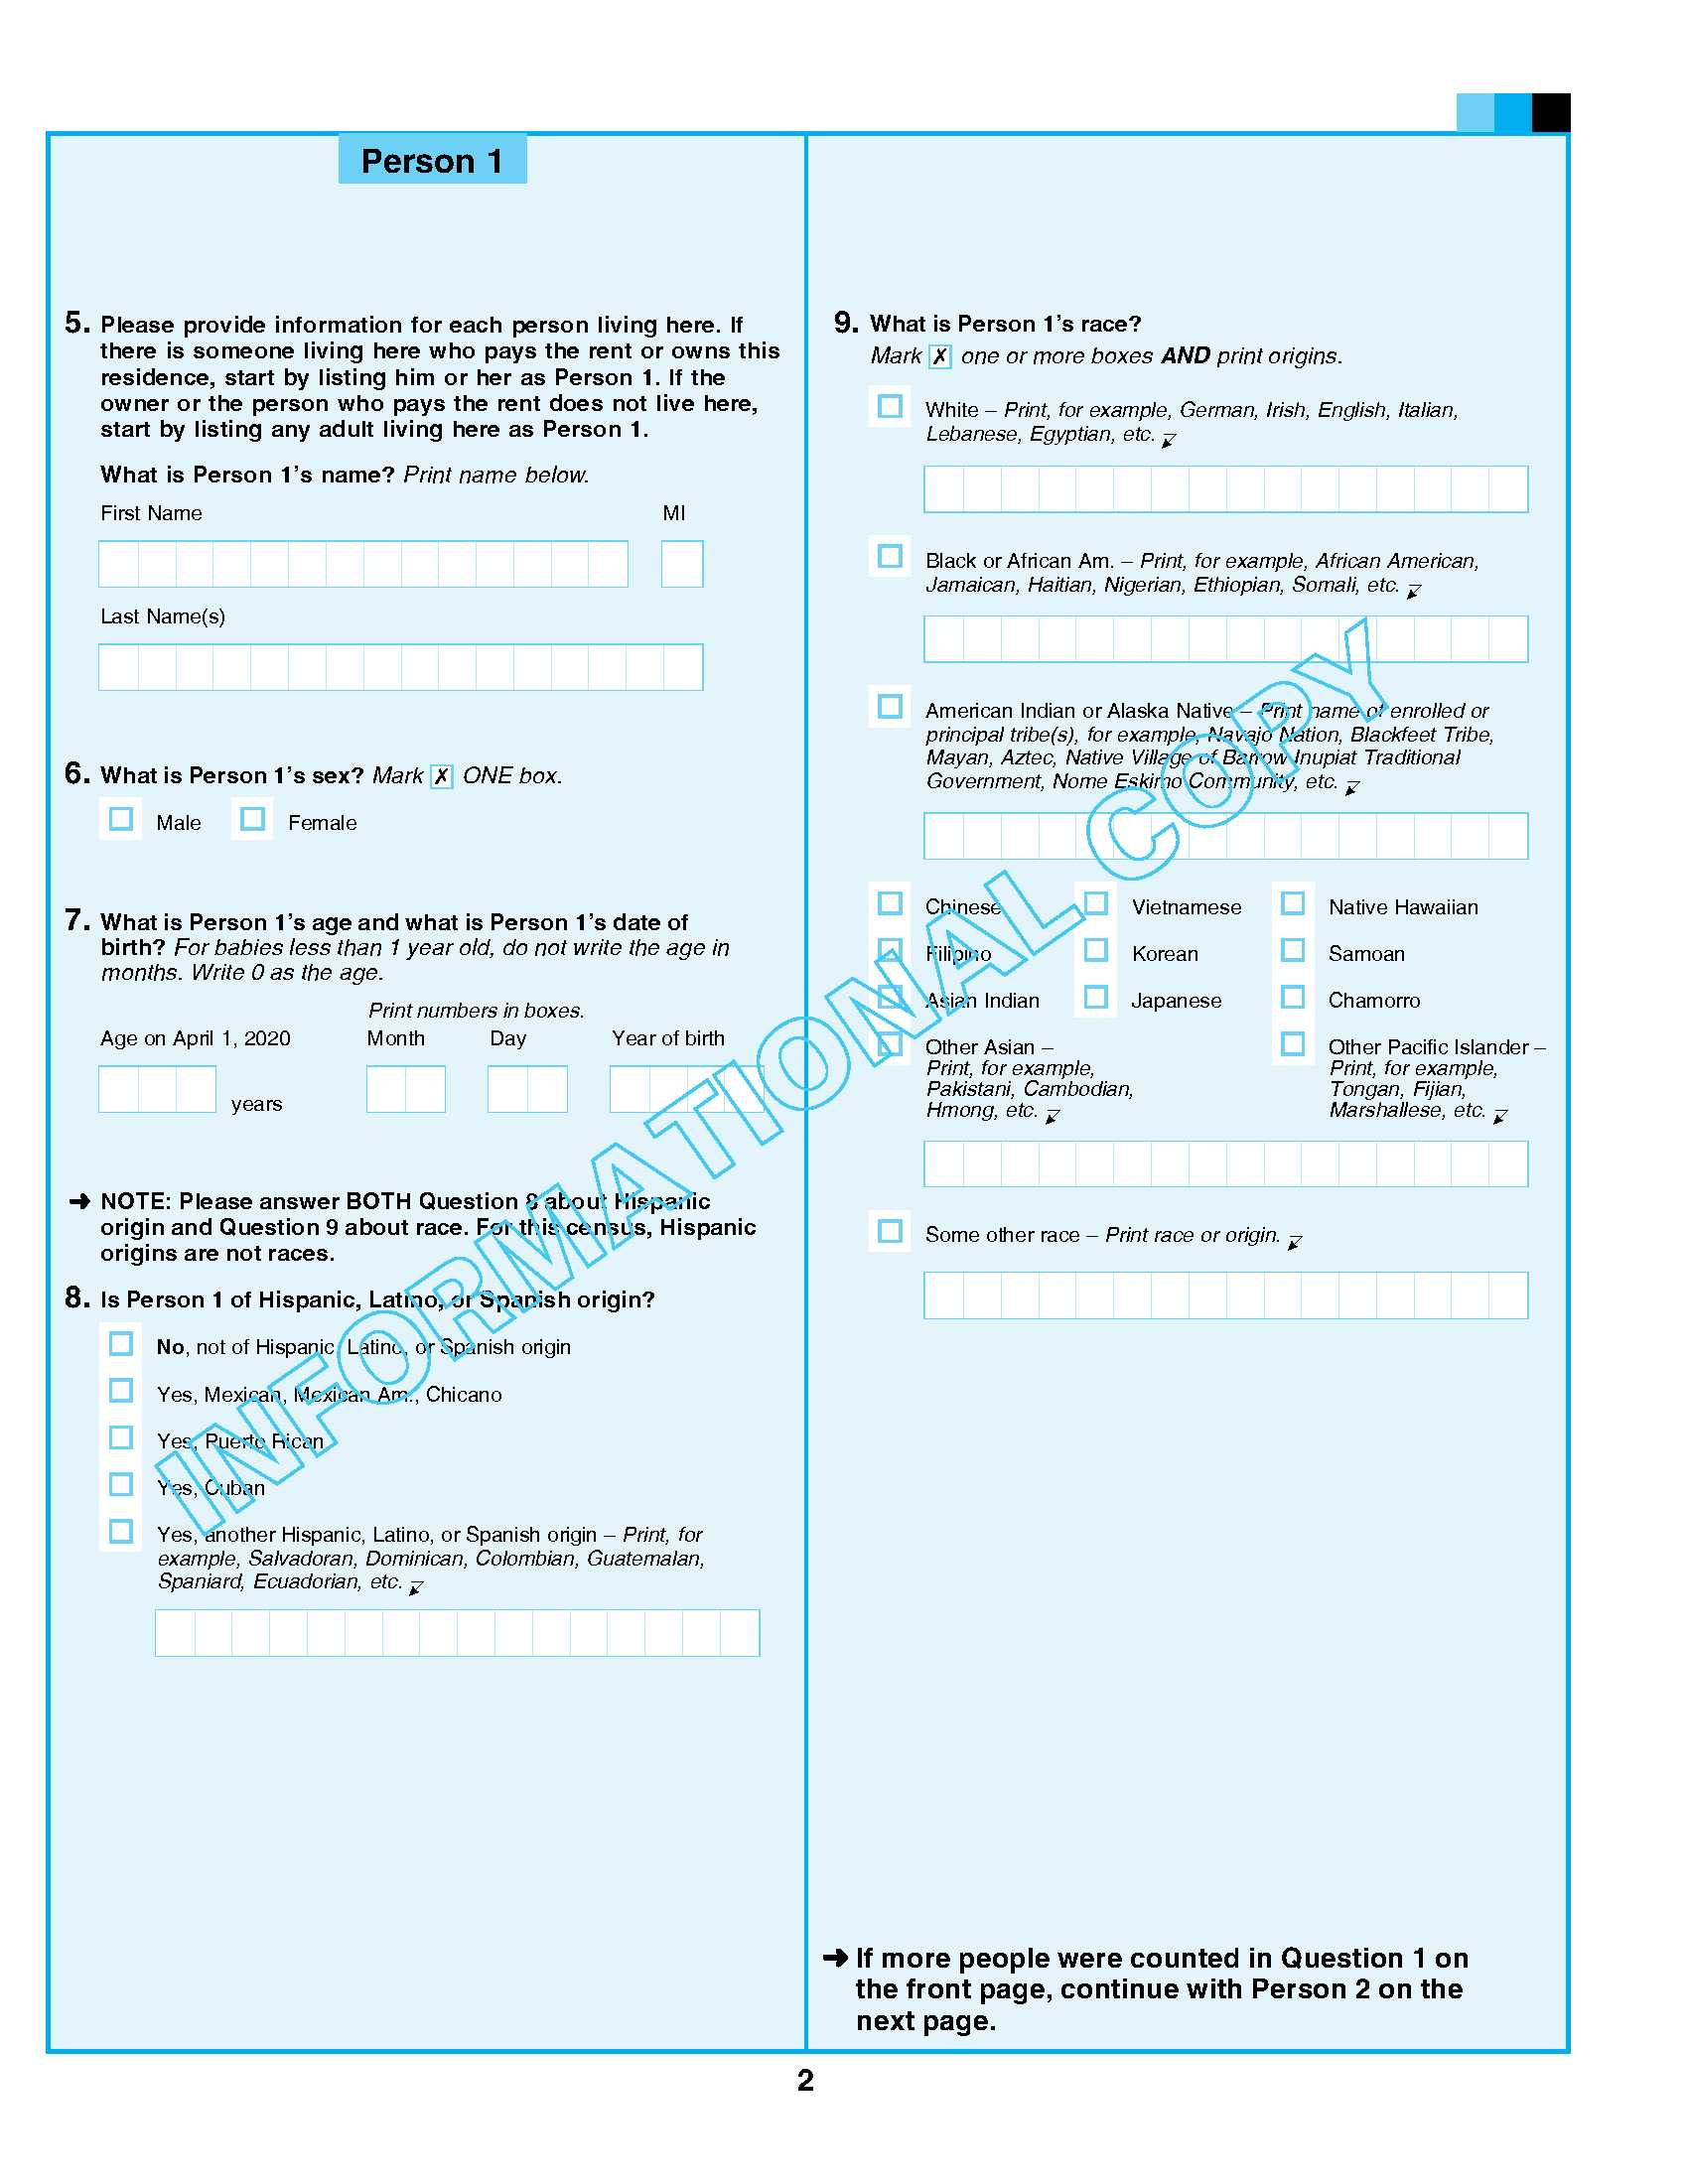 Informational Copy of Census Questionnaire